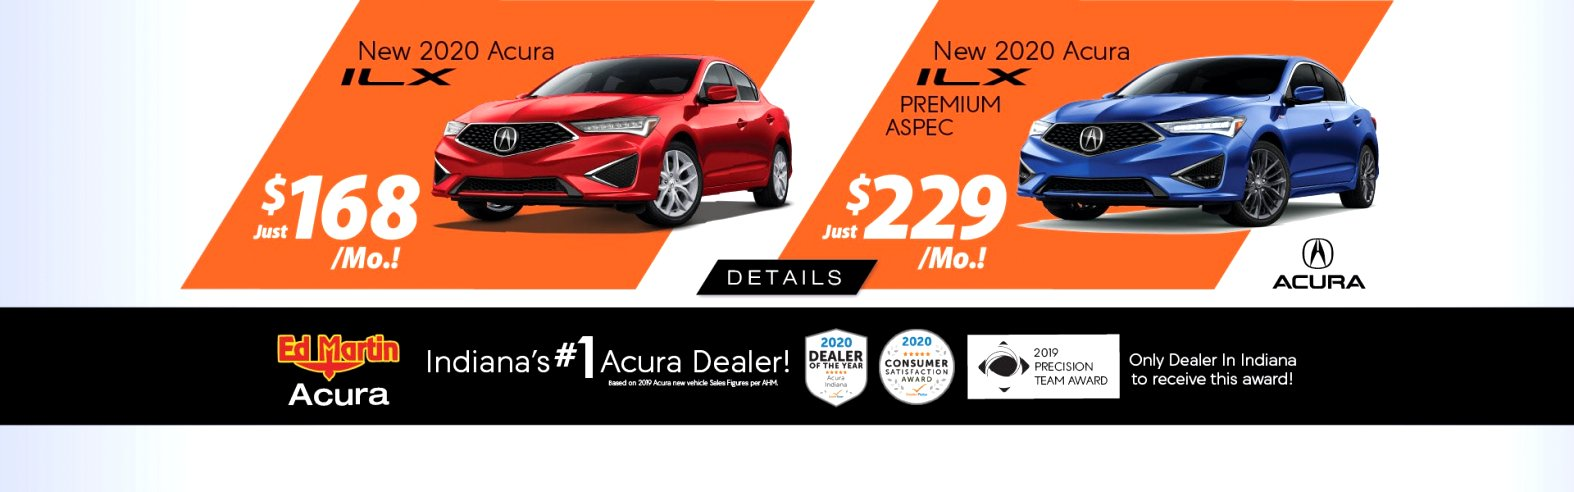 acura black friday deals 2020 Specs